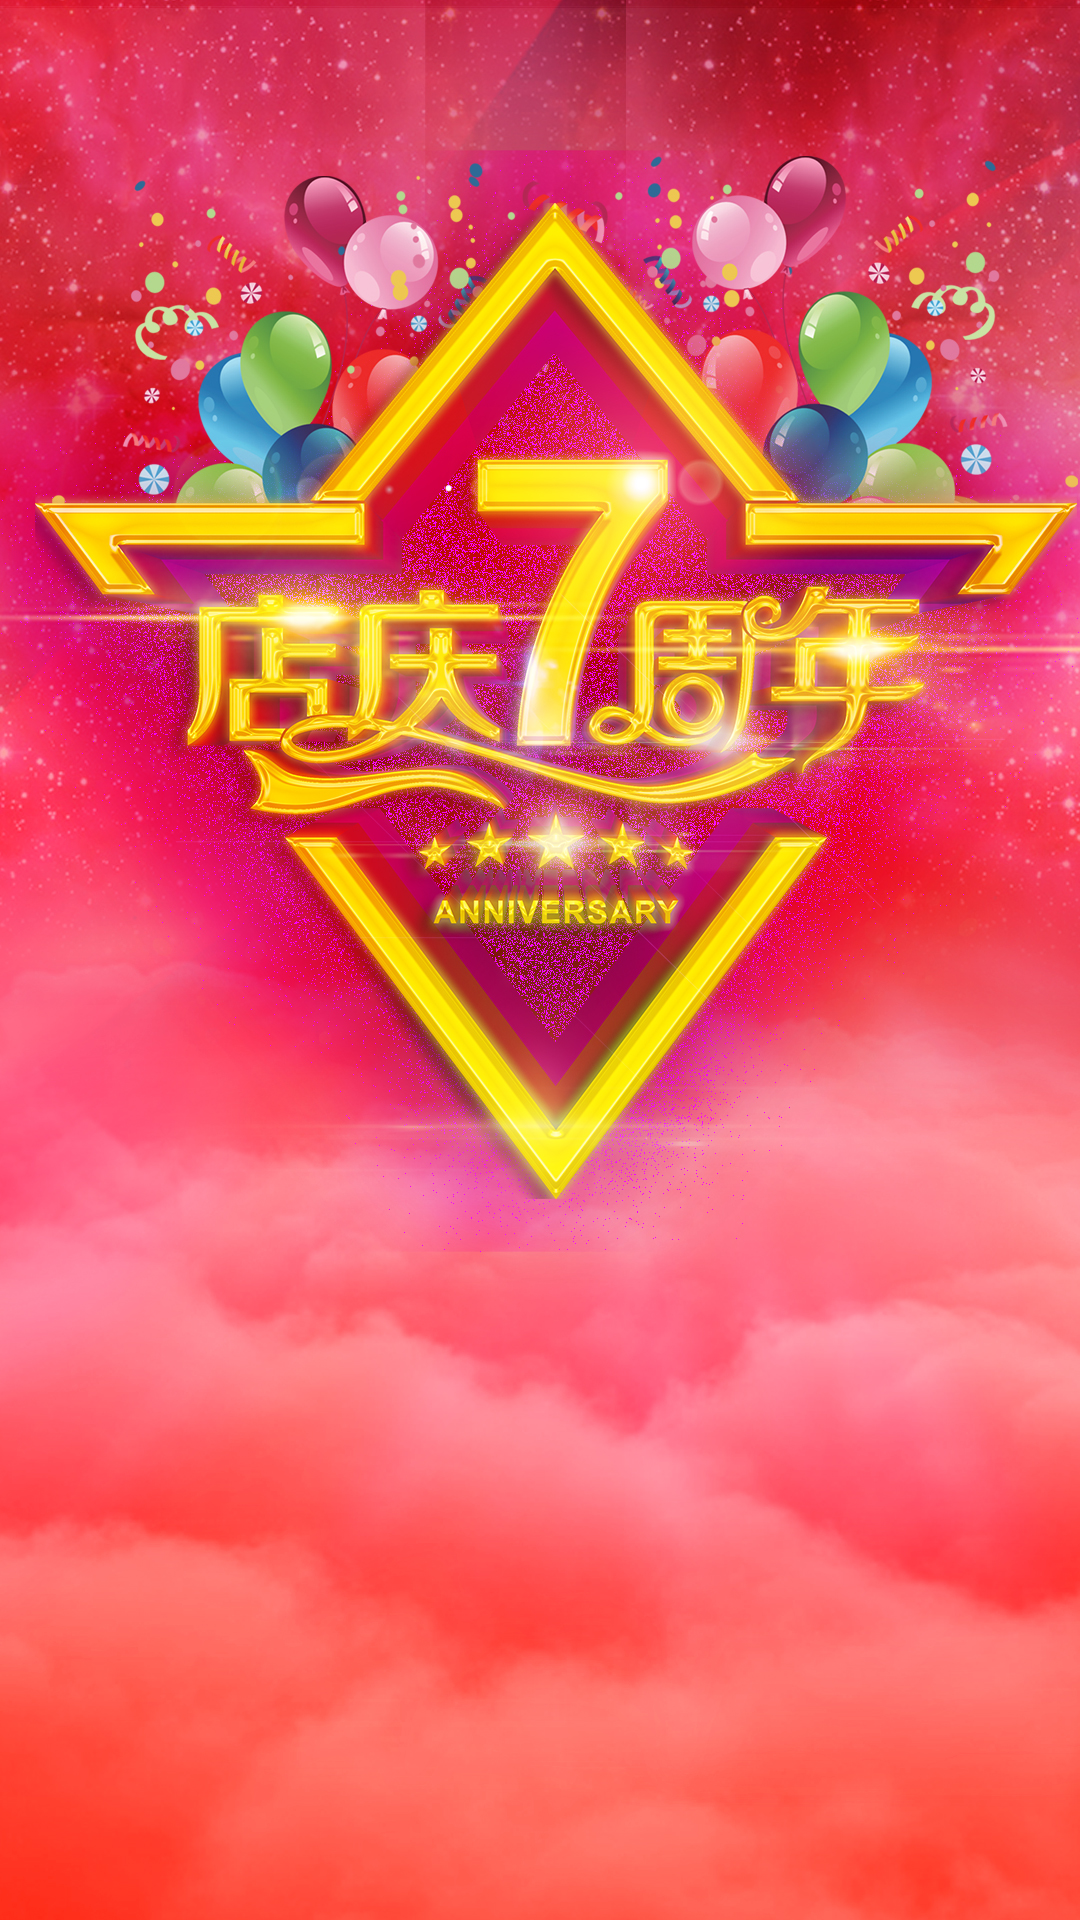 Red Gradient Background H5 Seventh Anniversary Anniversary, Red ...